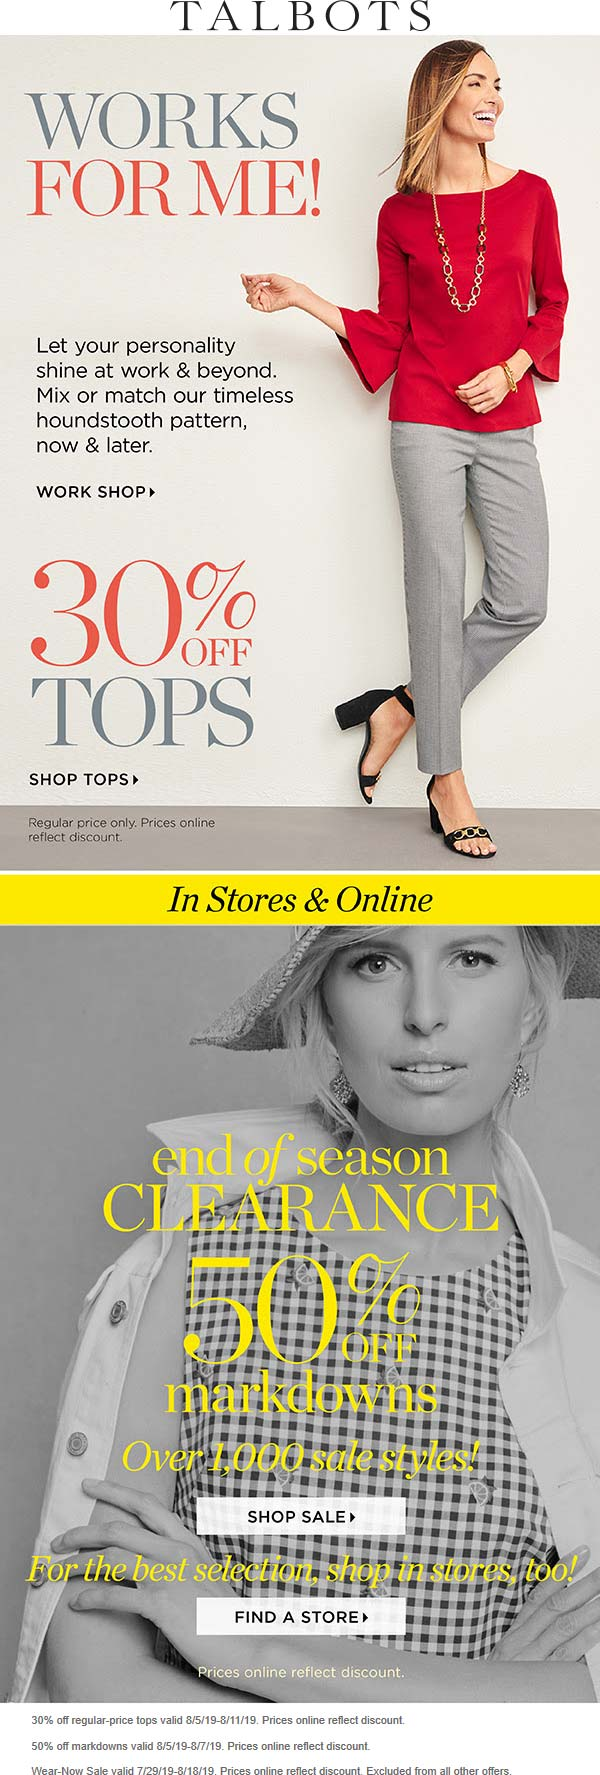 Talbots Coupon August 2019 30% off tops & 50% off sale items at Talbots, ditto online